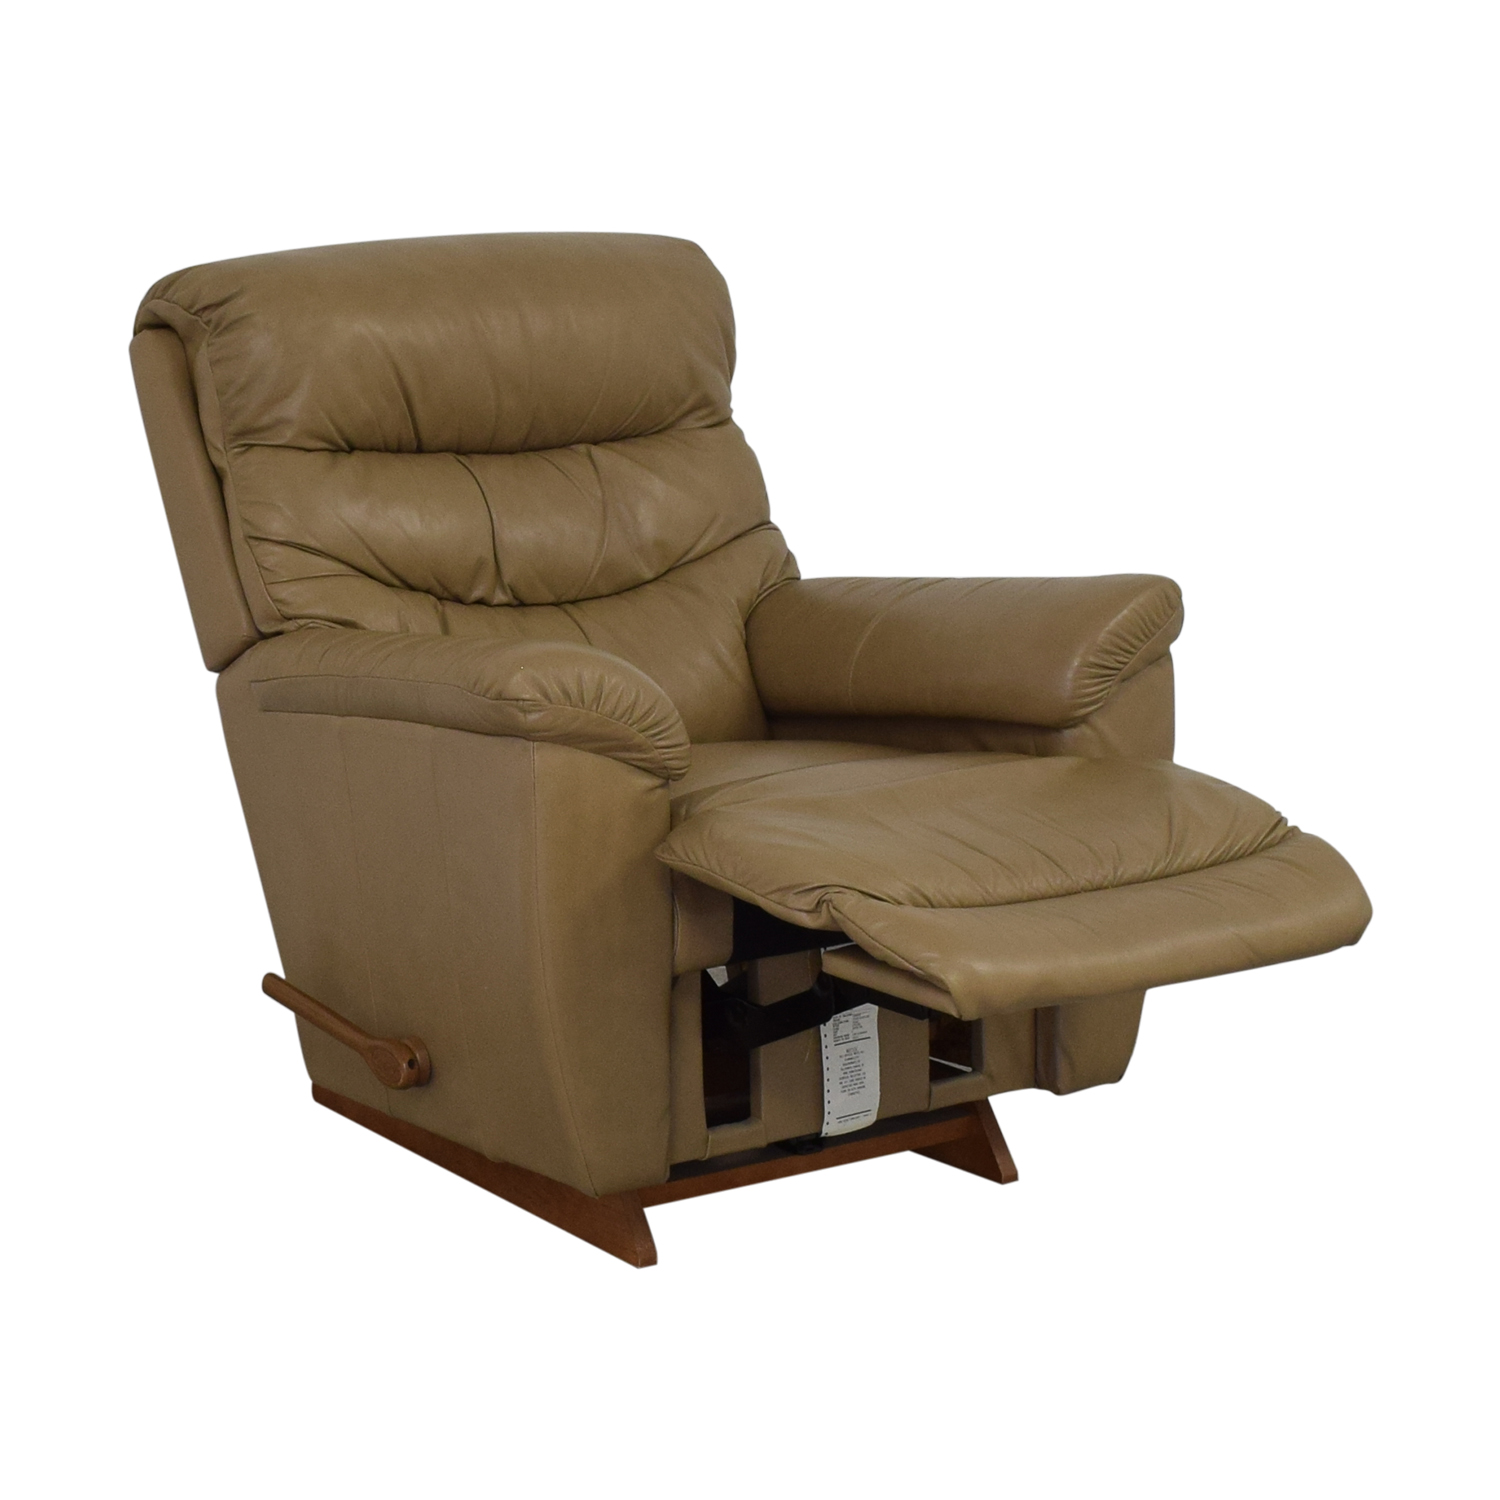 La-Z-Boy Leather Recliner / Chairs